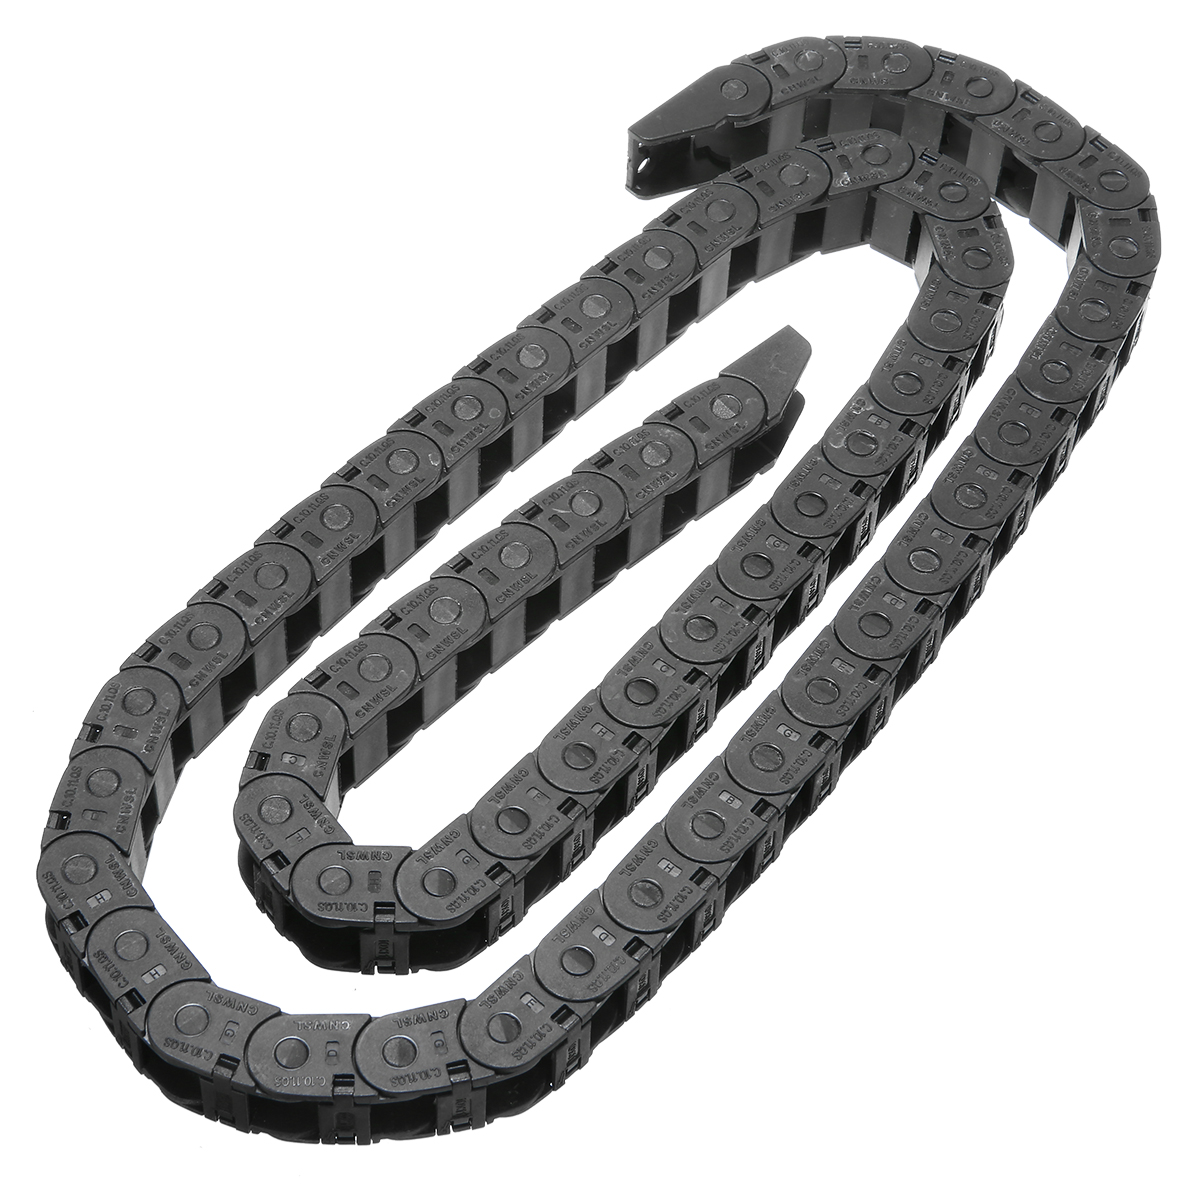 10x11mm 1M Nylon Cable Carrier Drag Chain Nested Wire Carriers Transmission Tank Chains Towline for CNC Router Machine Tools in Transmission Chains from Home Improvement